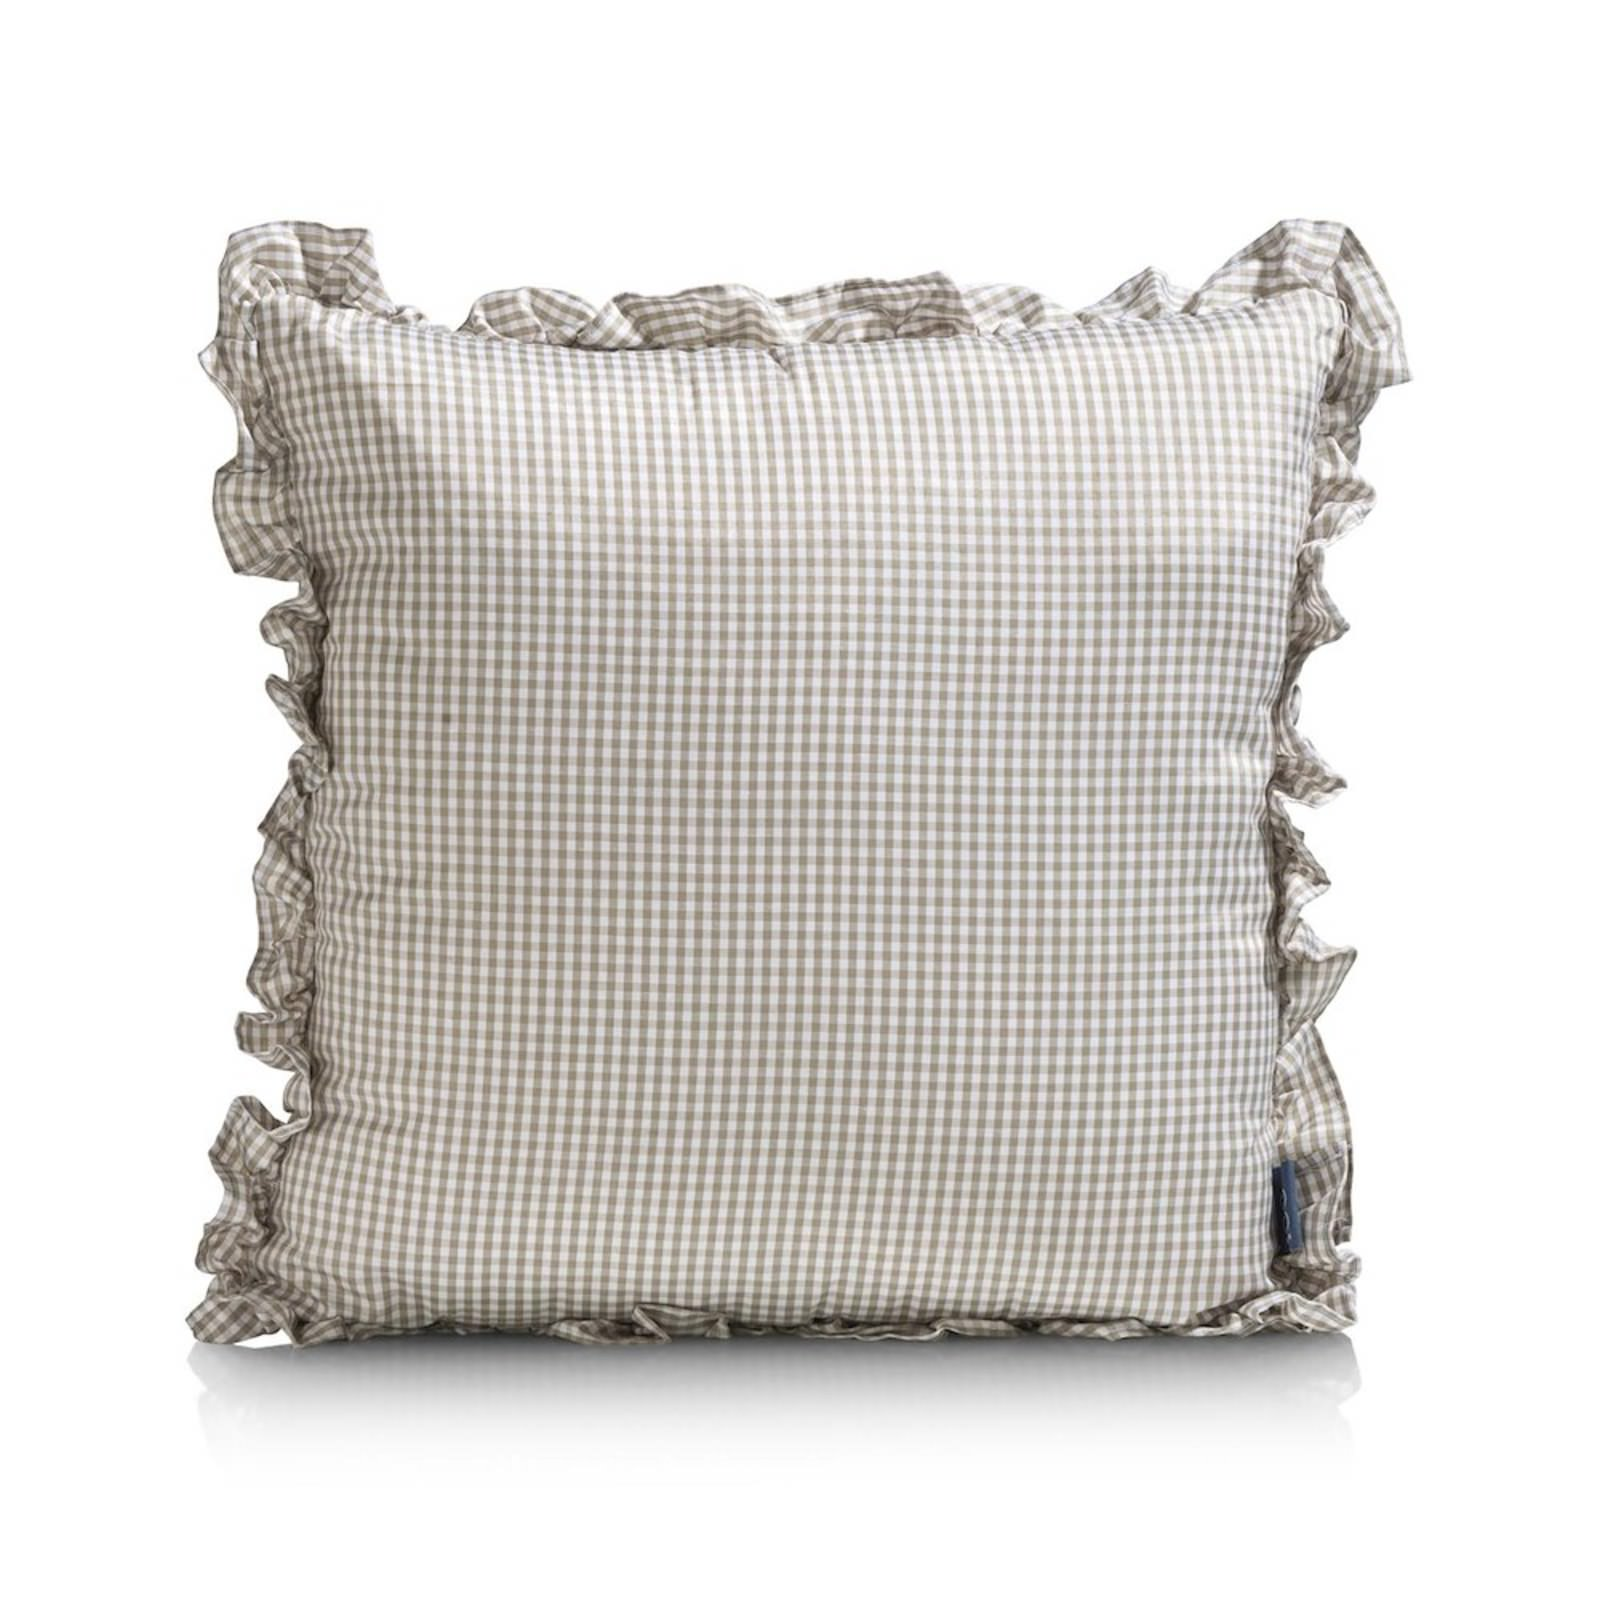 CHECKERS COUSSIN 45X45CM